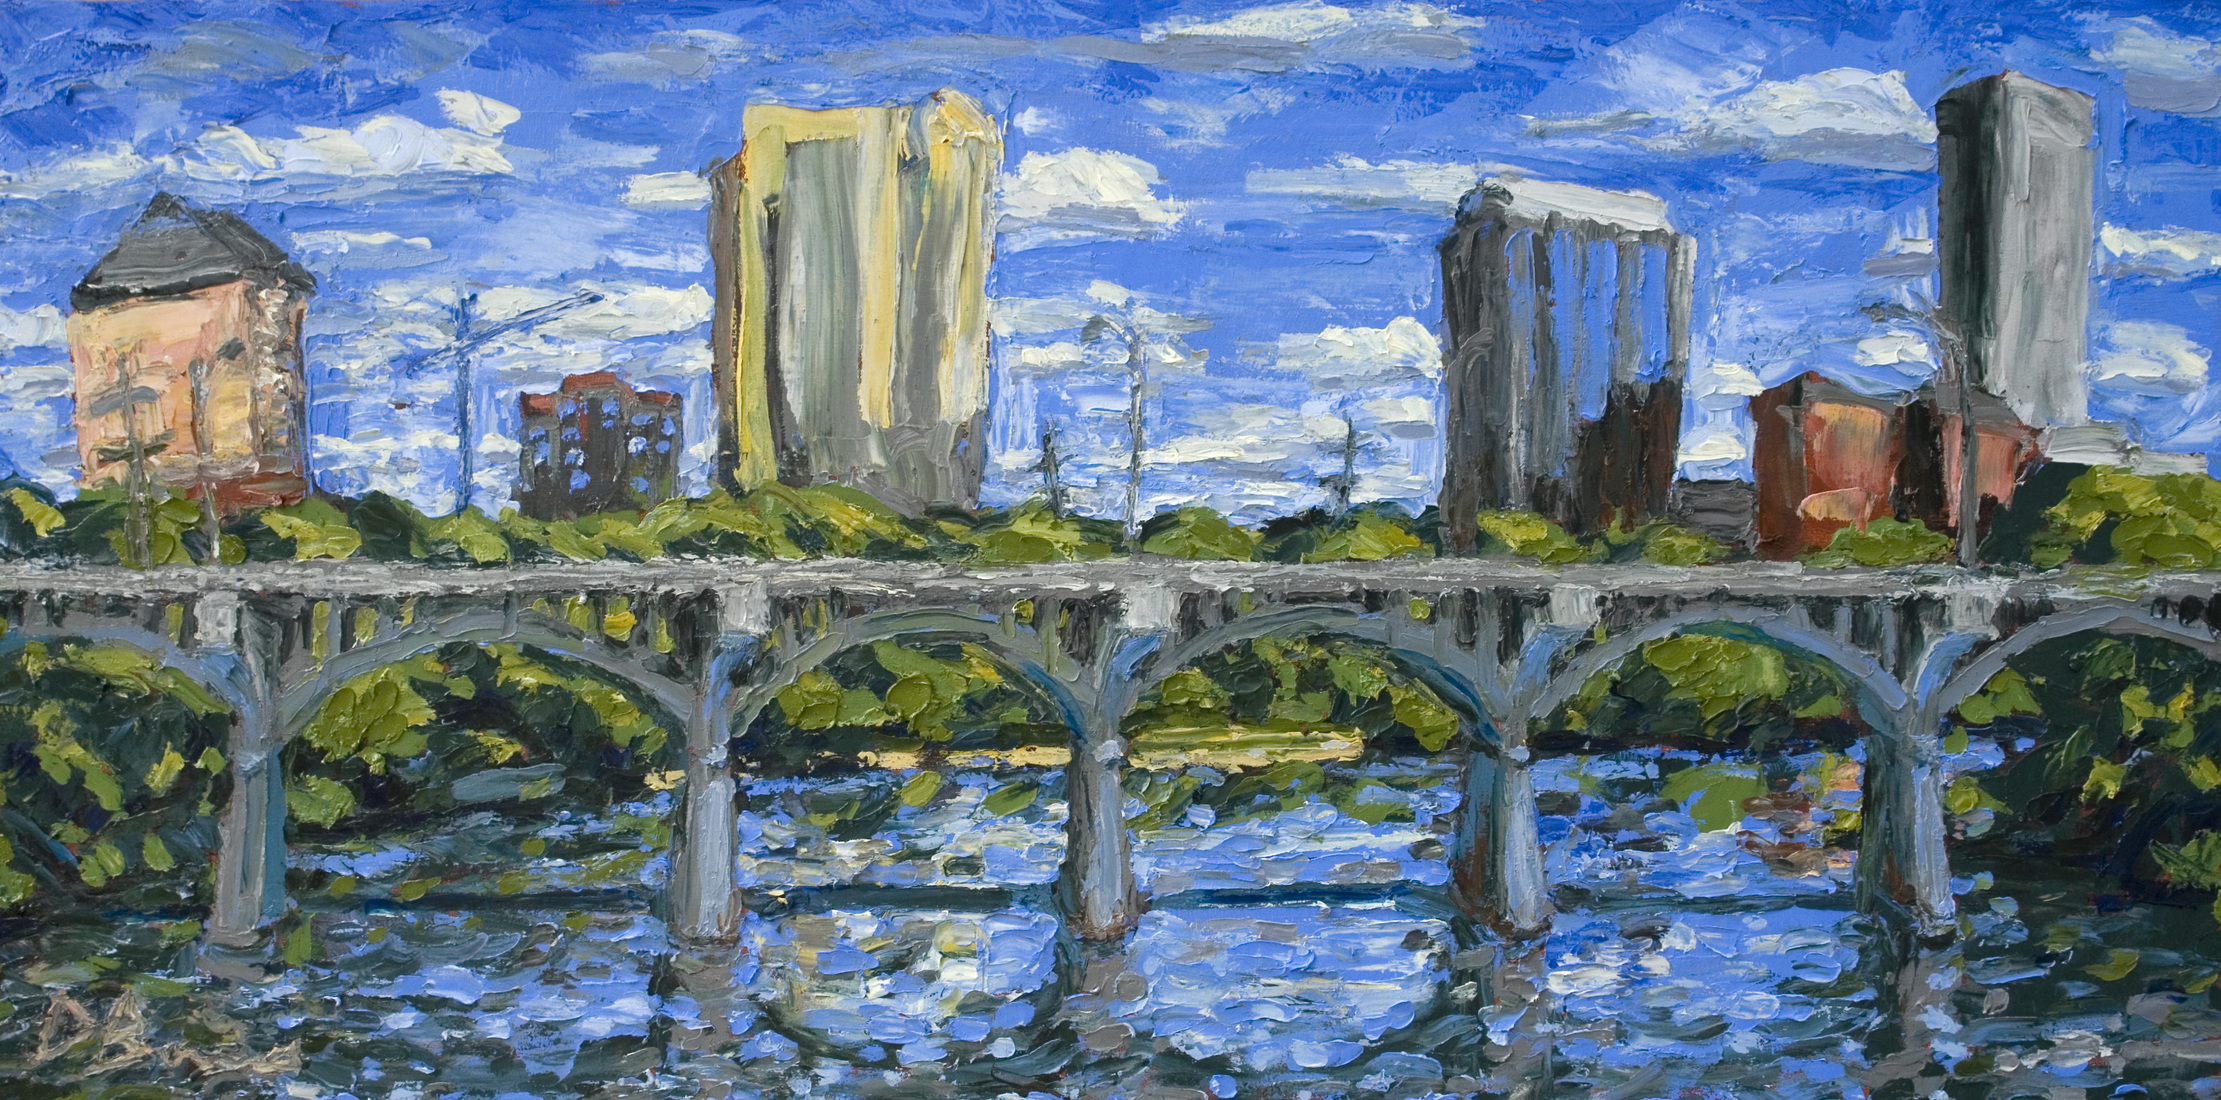 Austin Paintings Congress Avenue Bridge